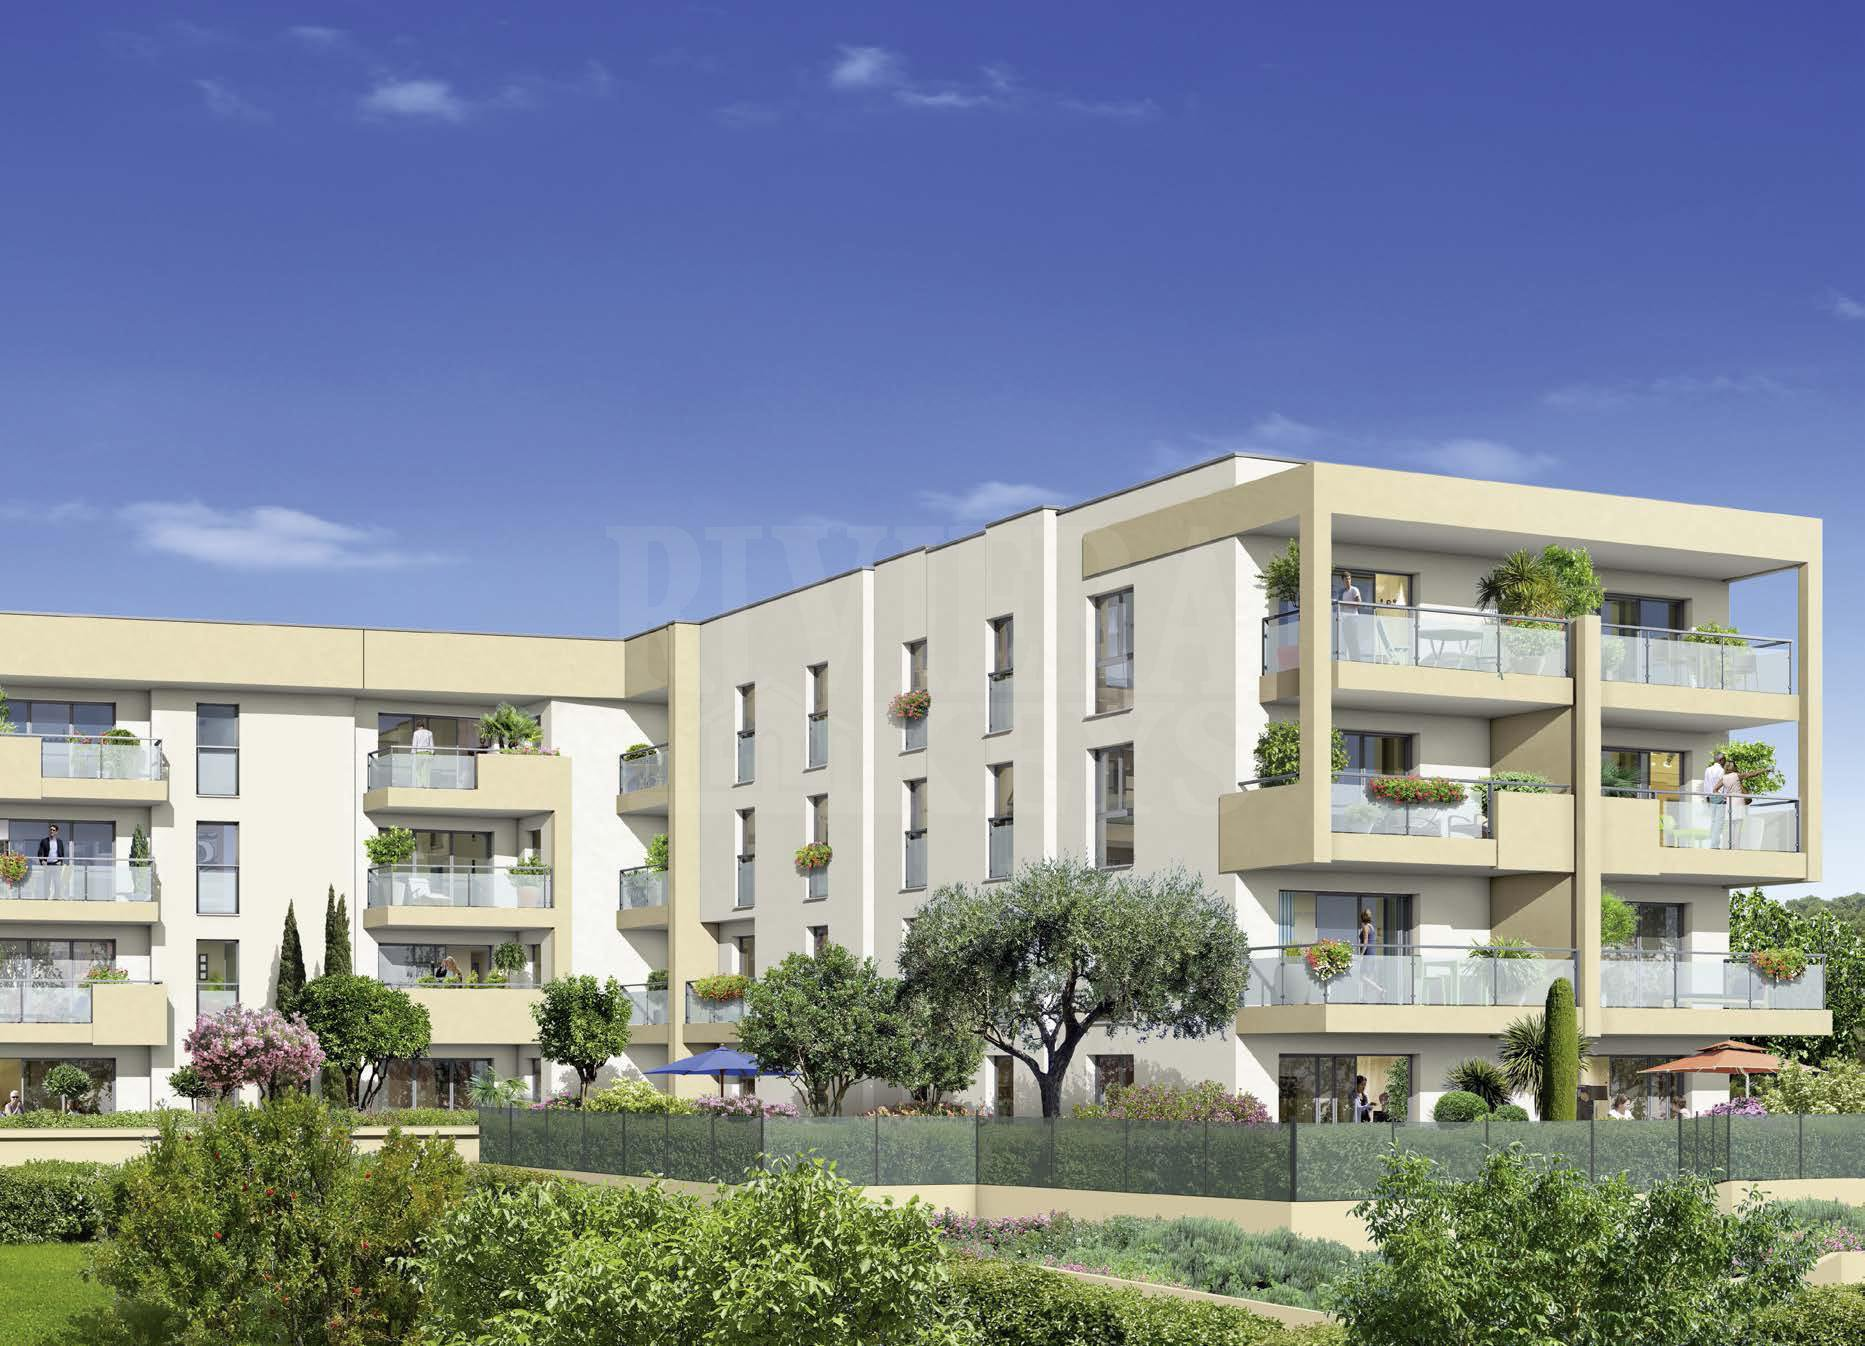 New apartments with sea view in a quiet area near Port Vauban in Antibes